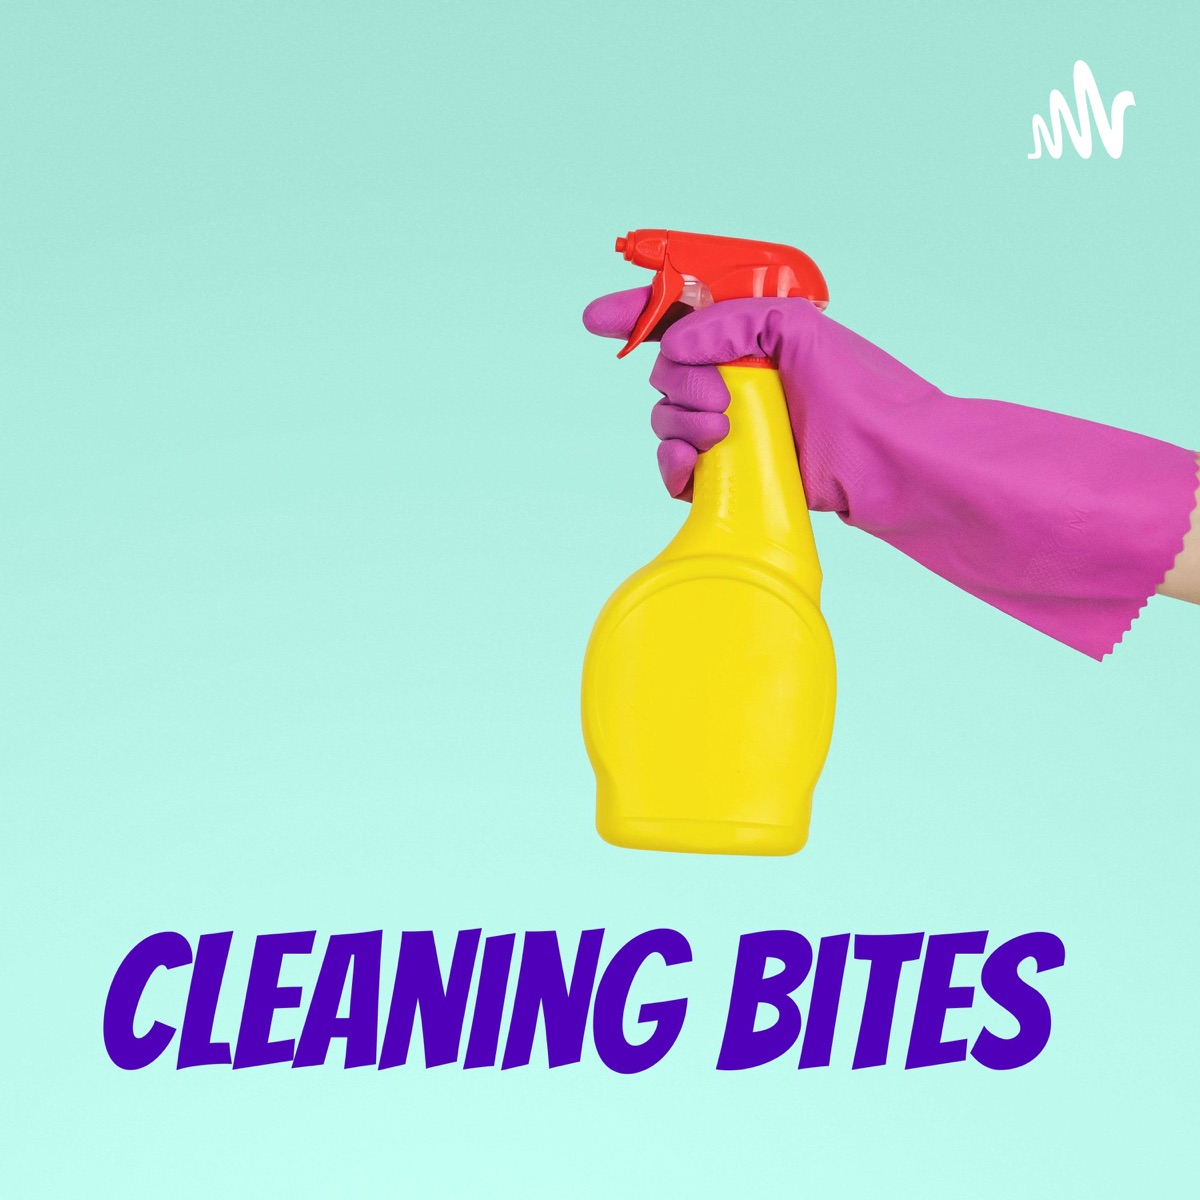 Cleaning Bites